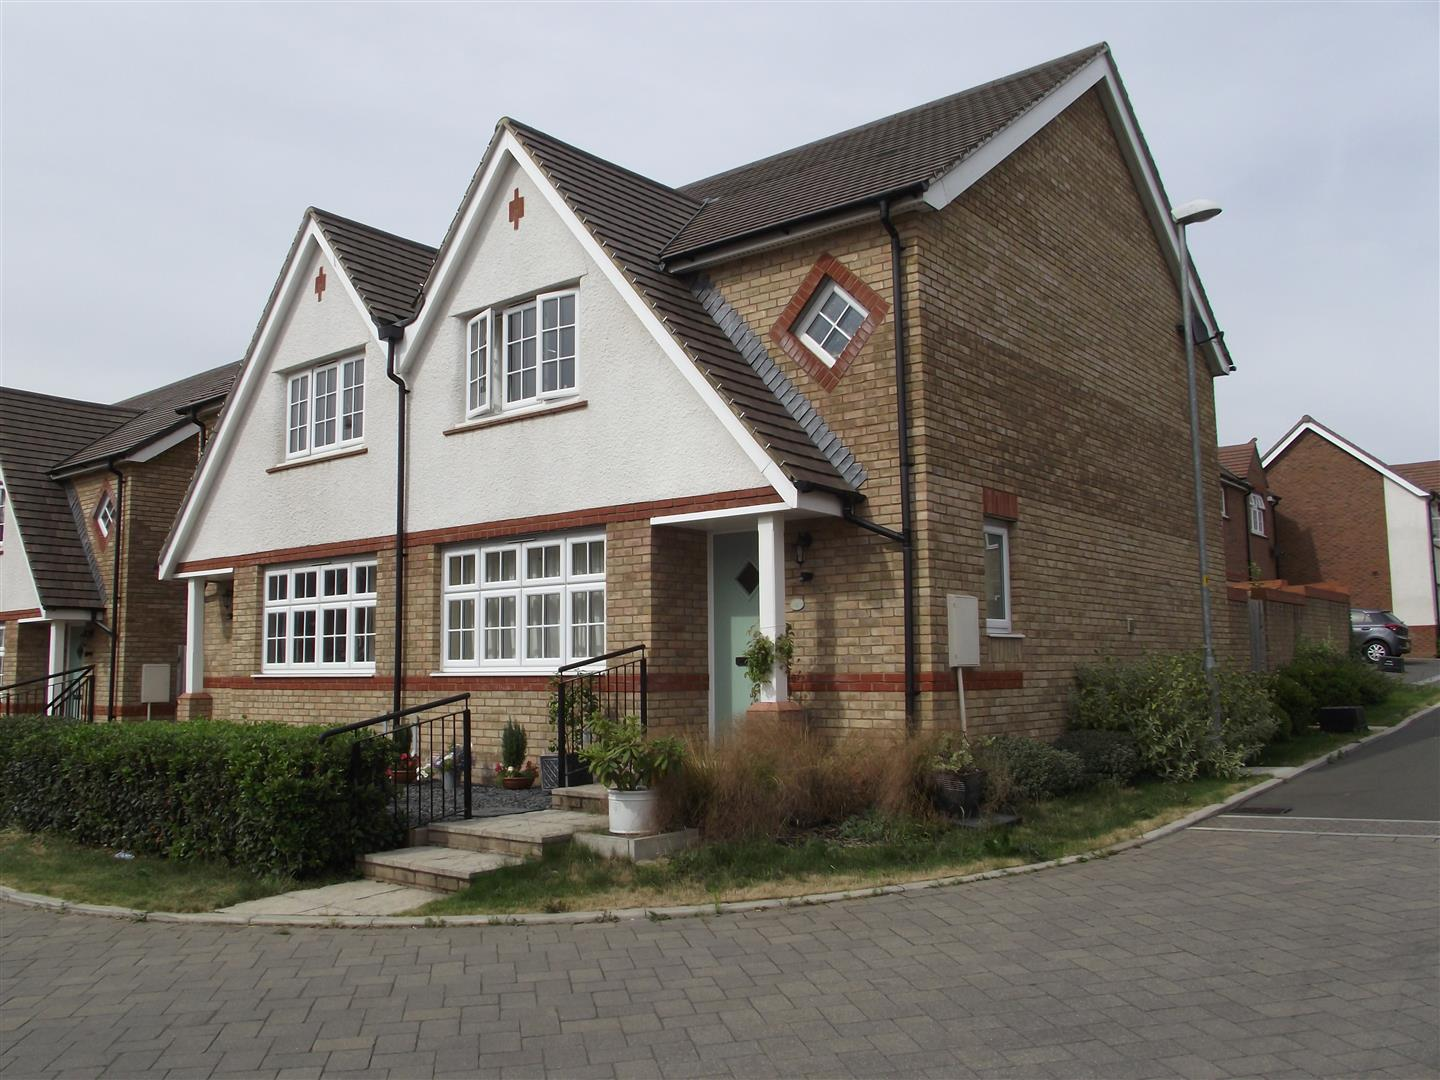 3 Bedrooms Semi Detached House for sale in York Road, Calne